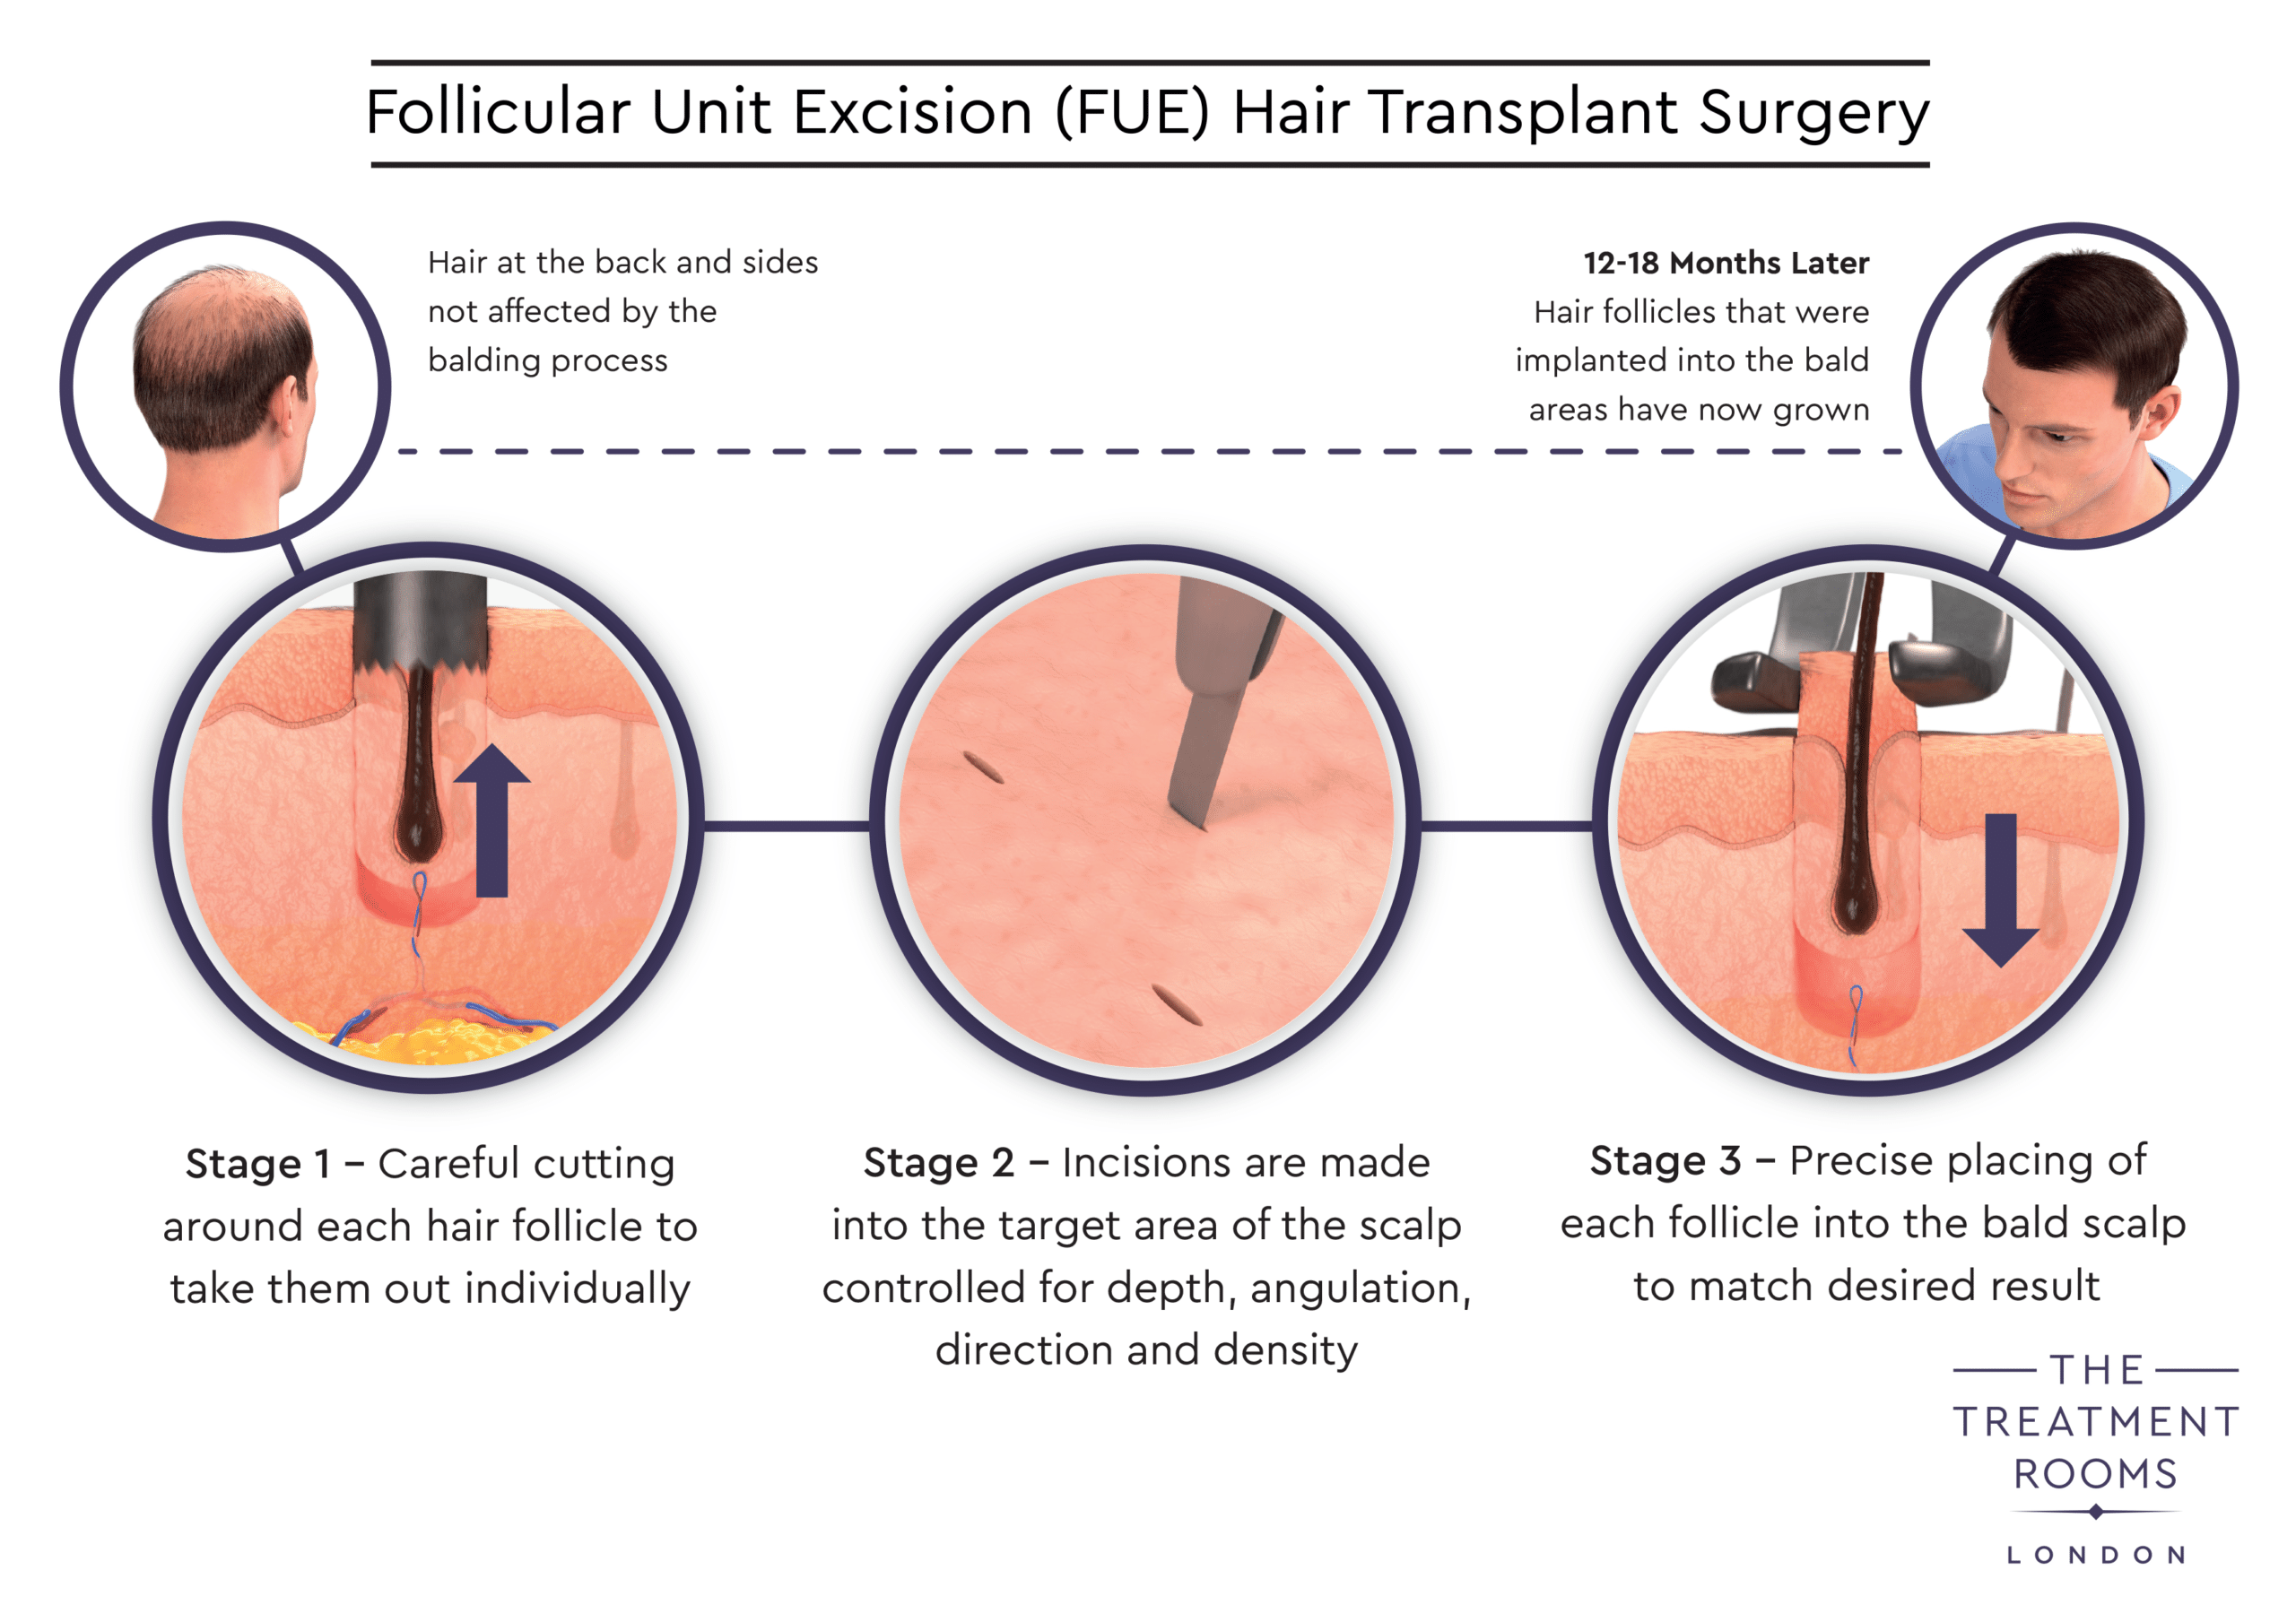 FUE Hair Transplant Surgery Diagram